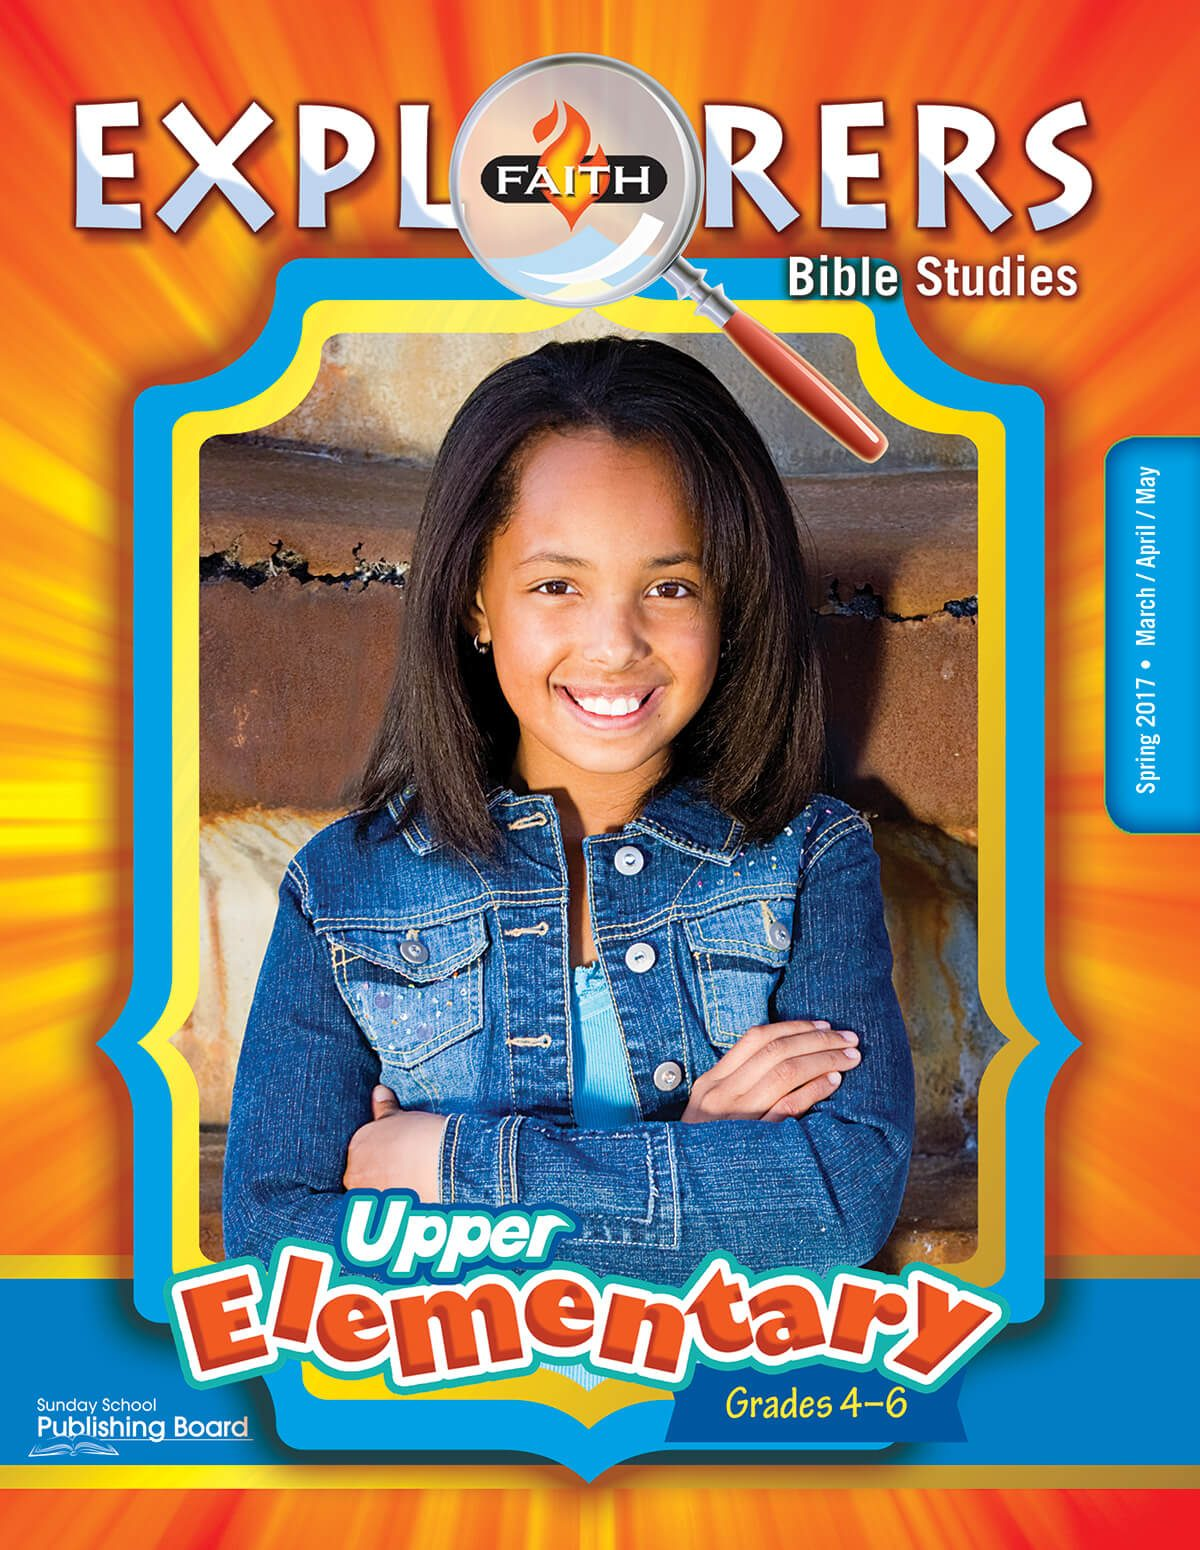 Faith Explorers Bible Studies for Upper Elementary Students (Spring 2017)–Digital Edition